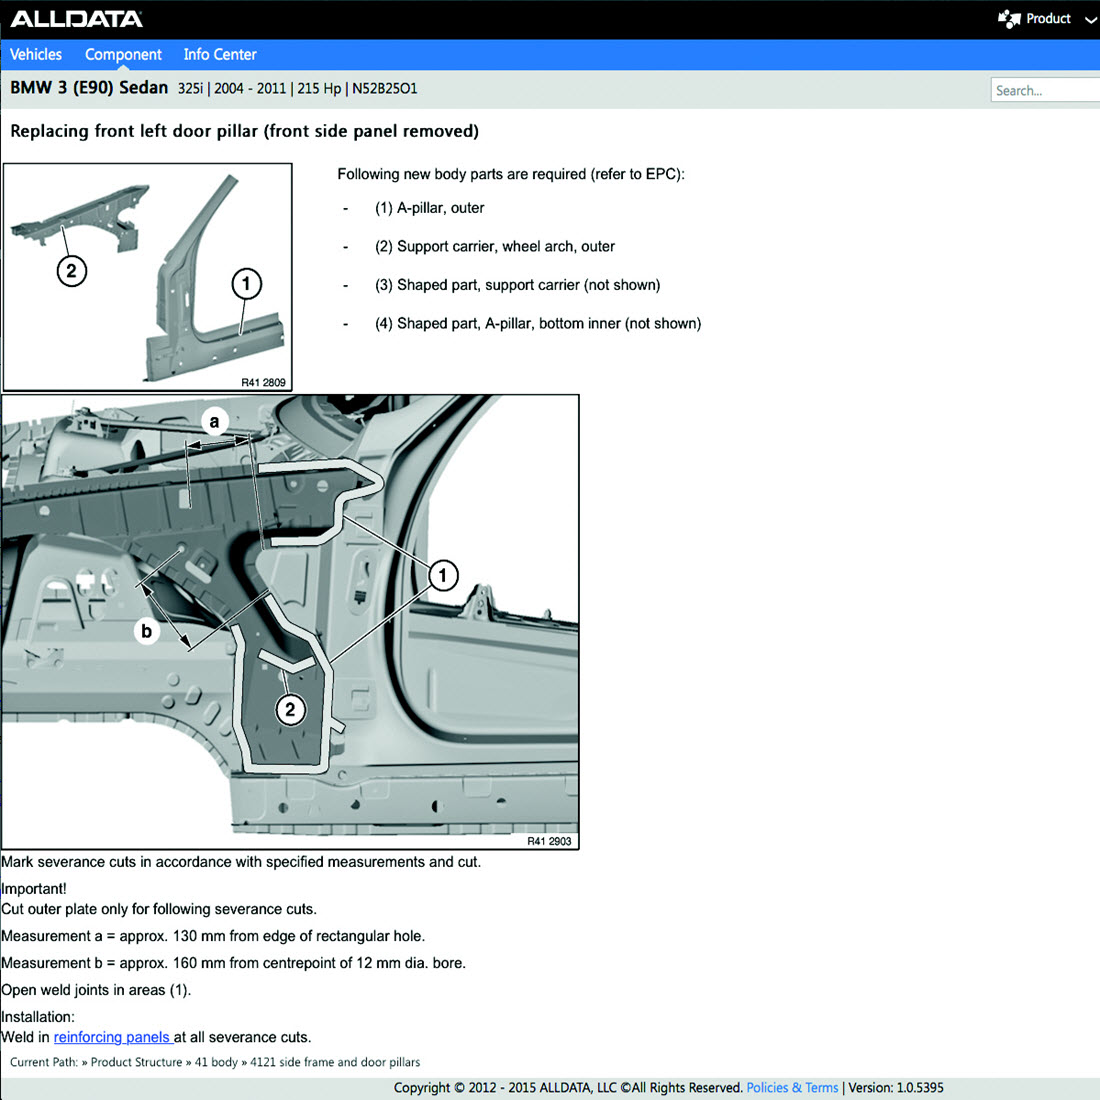 Alldata v. 10. 53 (2013 q3) automotive repair data disc 1 of 16.